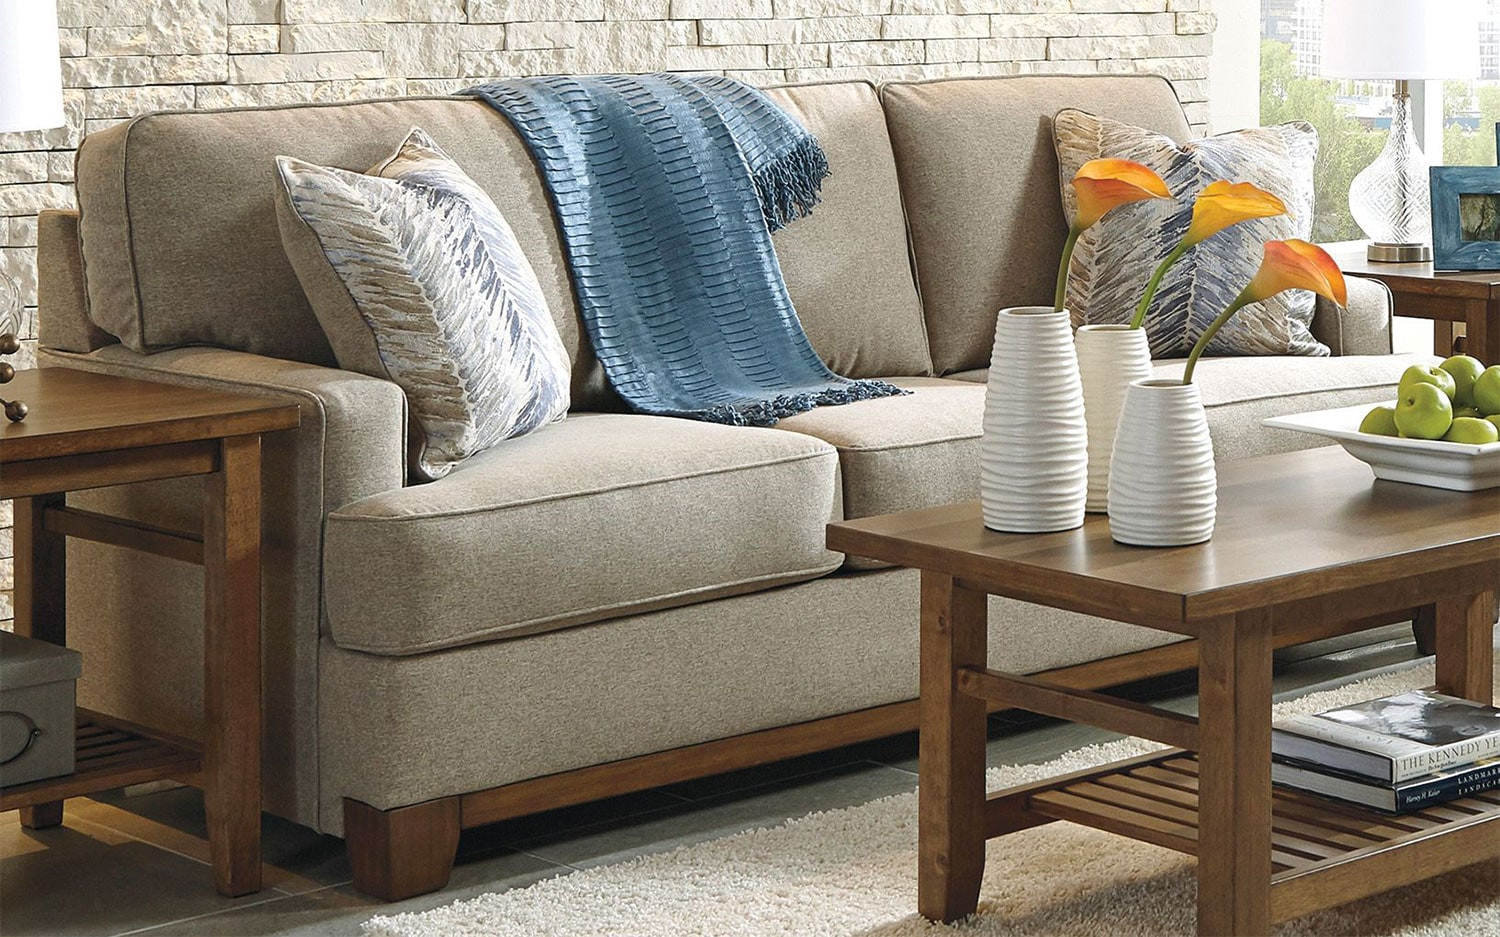 Eisley sofa pebble levin furniture for Levin furniture living room chairs